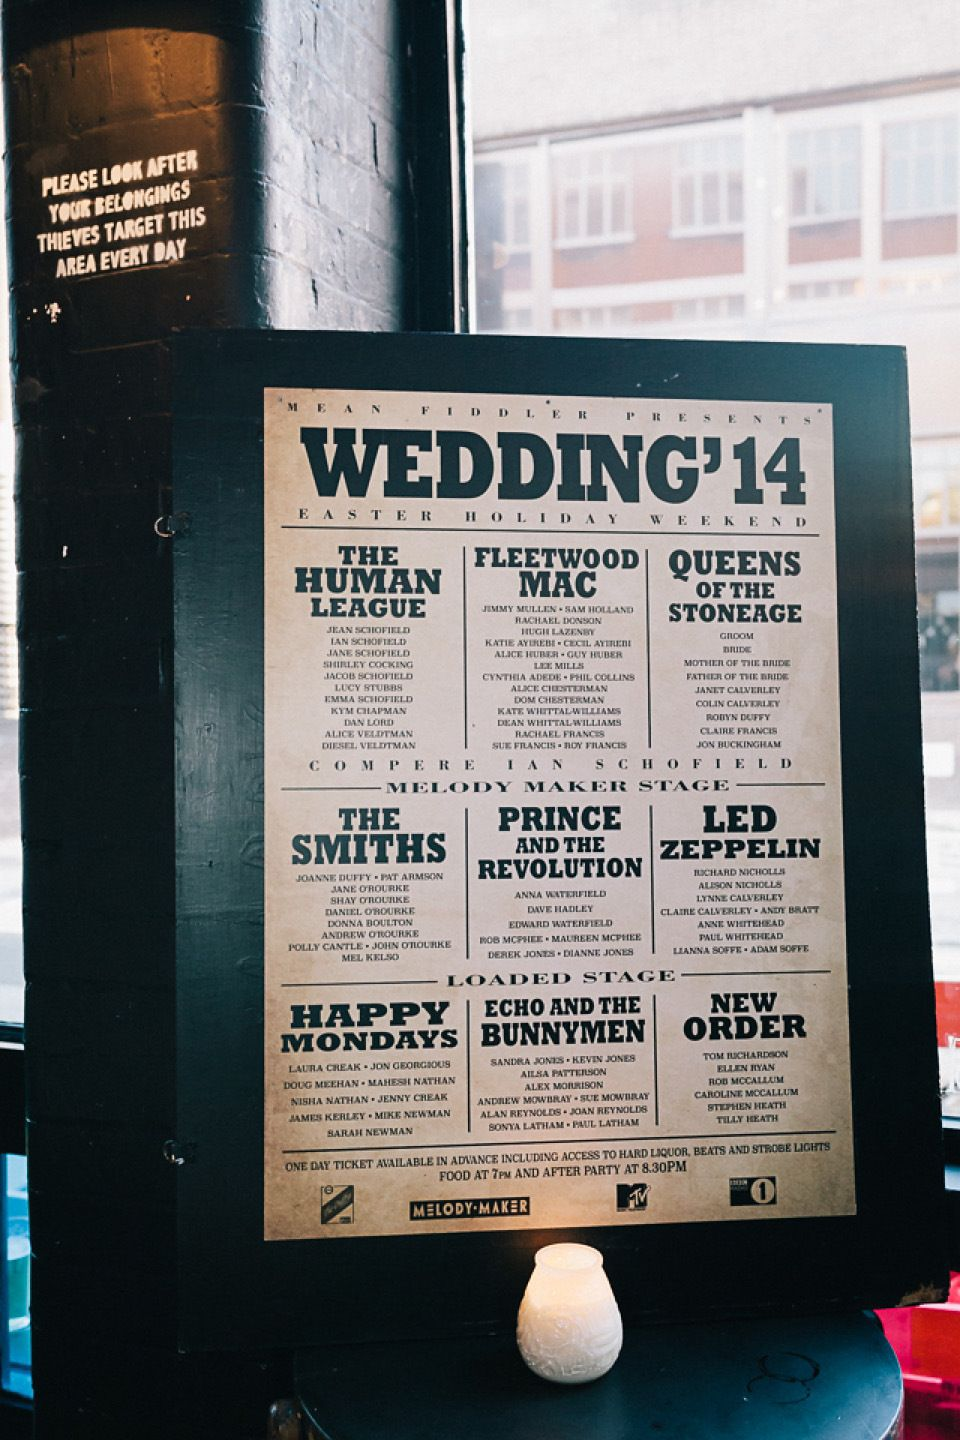 Music inspired wedding table plan | Photography by http://www.brighton-photo.com/